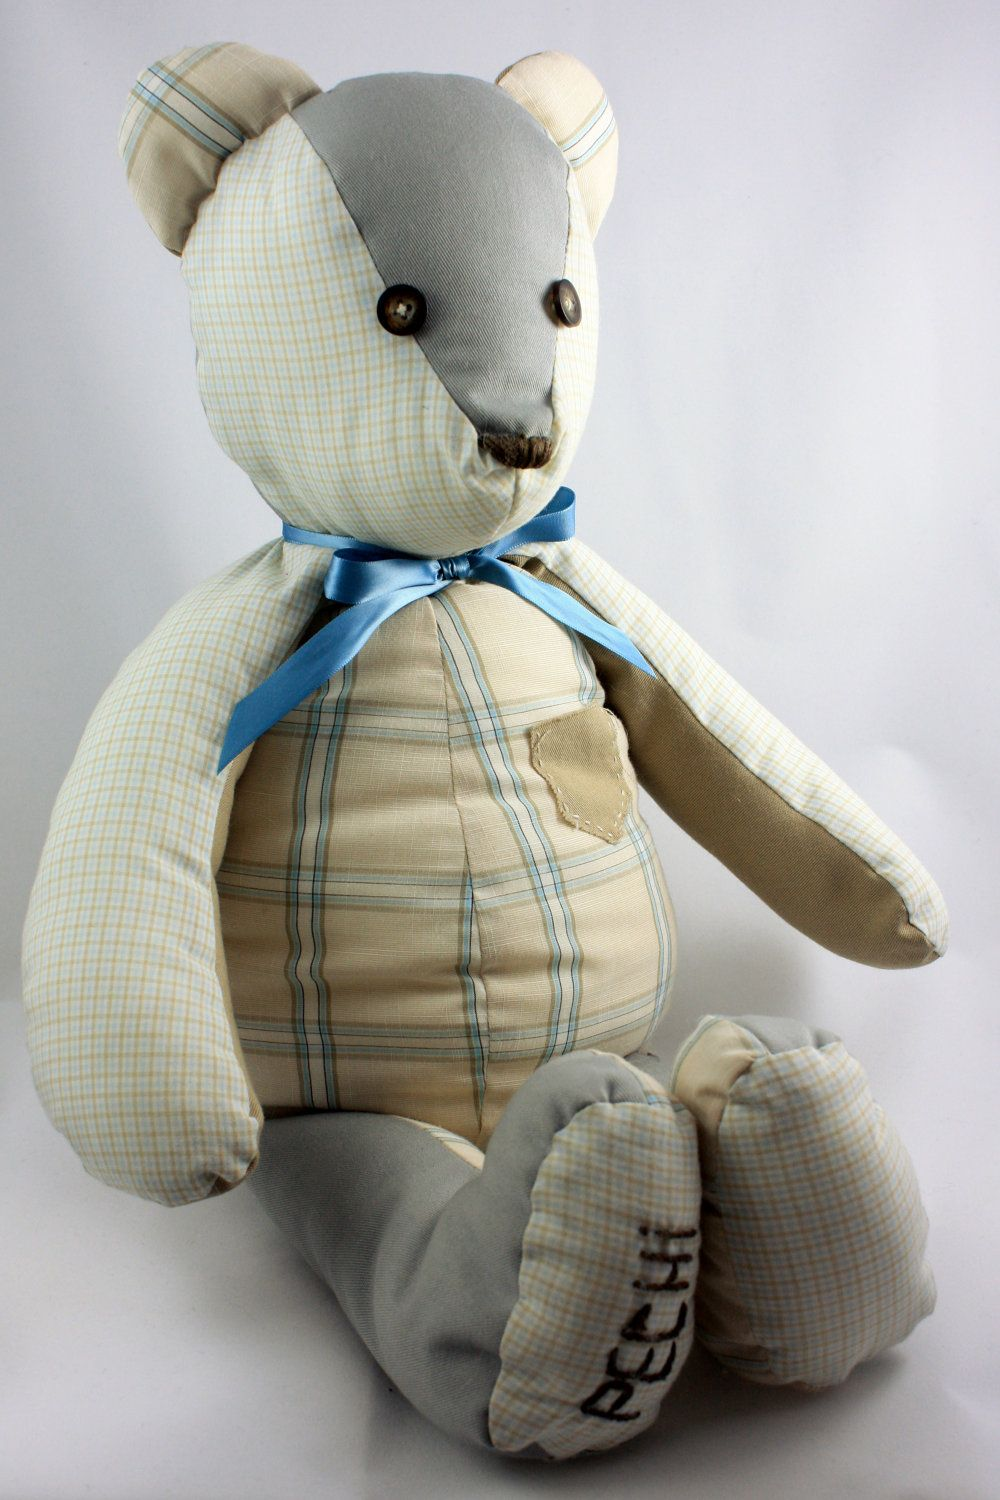 Memory bear created from your own fabric or clothing of choice can